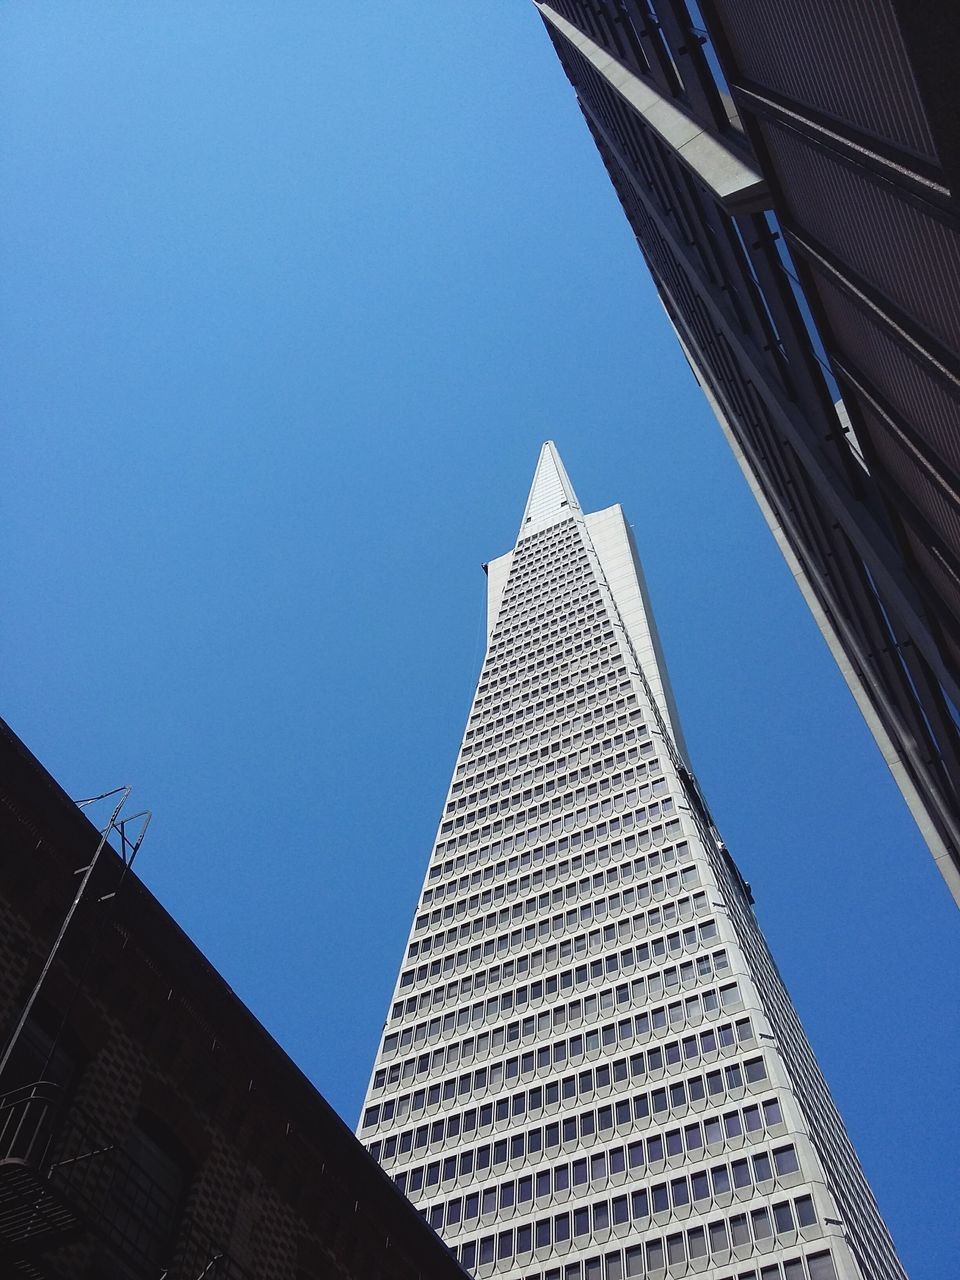 The transamerica pyramid. · San Francisco SF California CA USA Architecture skyscraper Skyscrapers transamerica building transamerica tower Urban geometry urban landscape Cityscape up